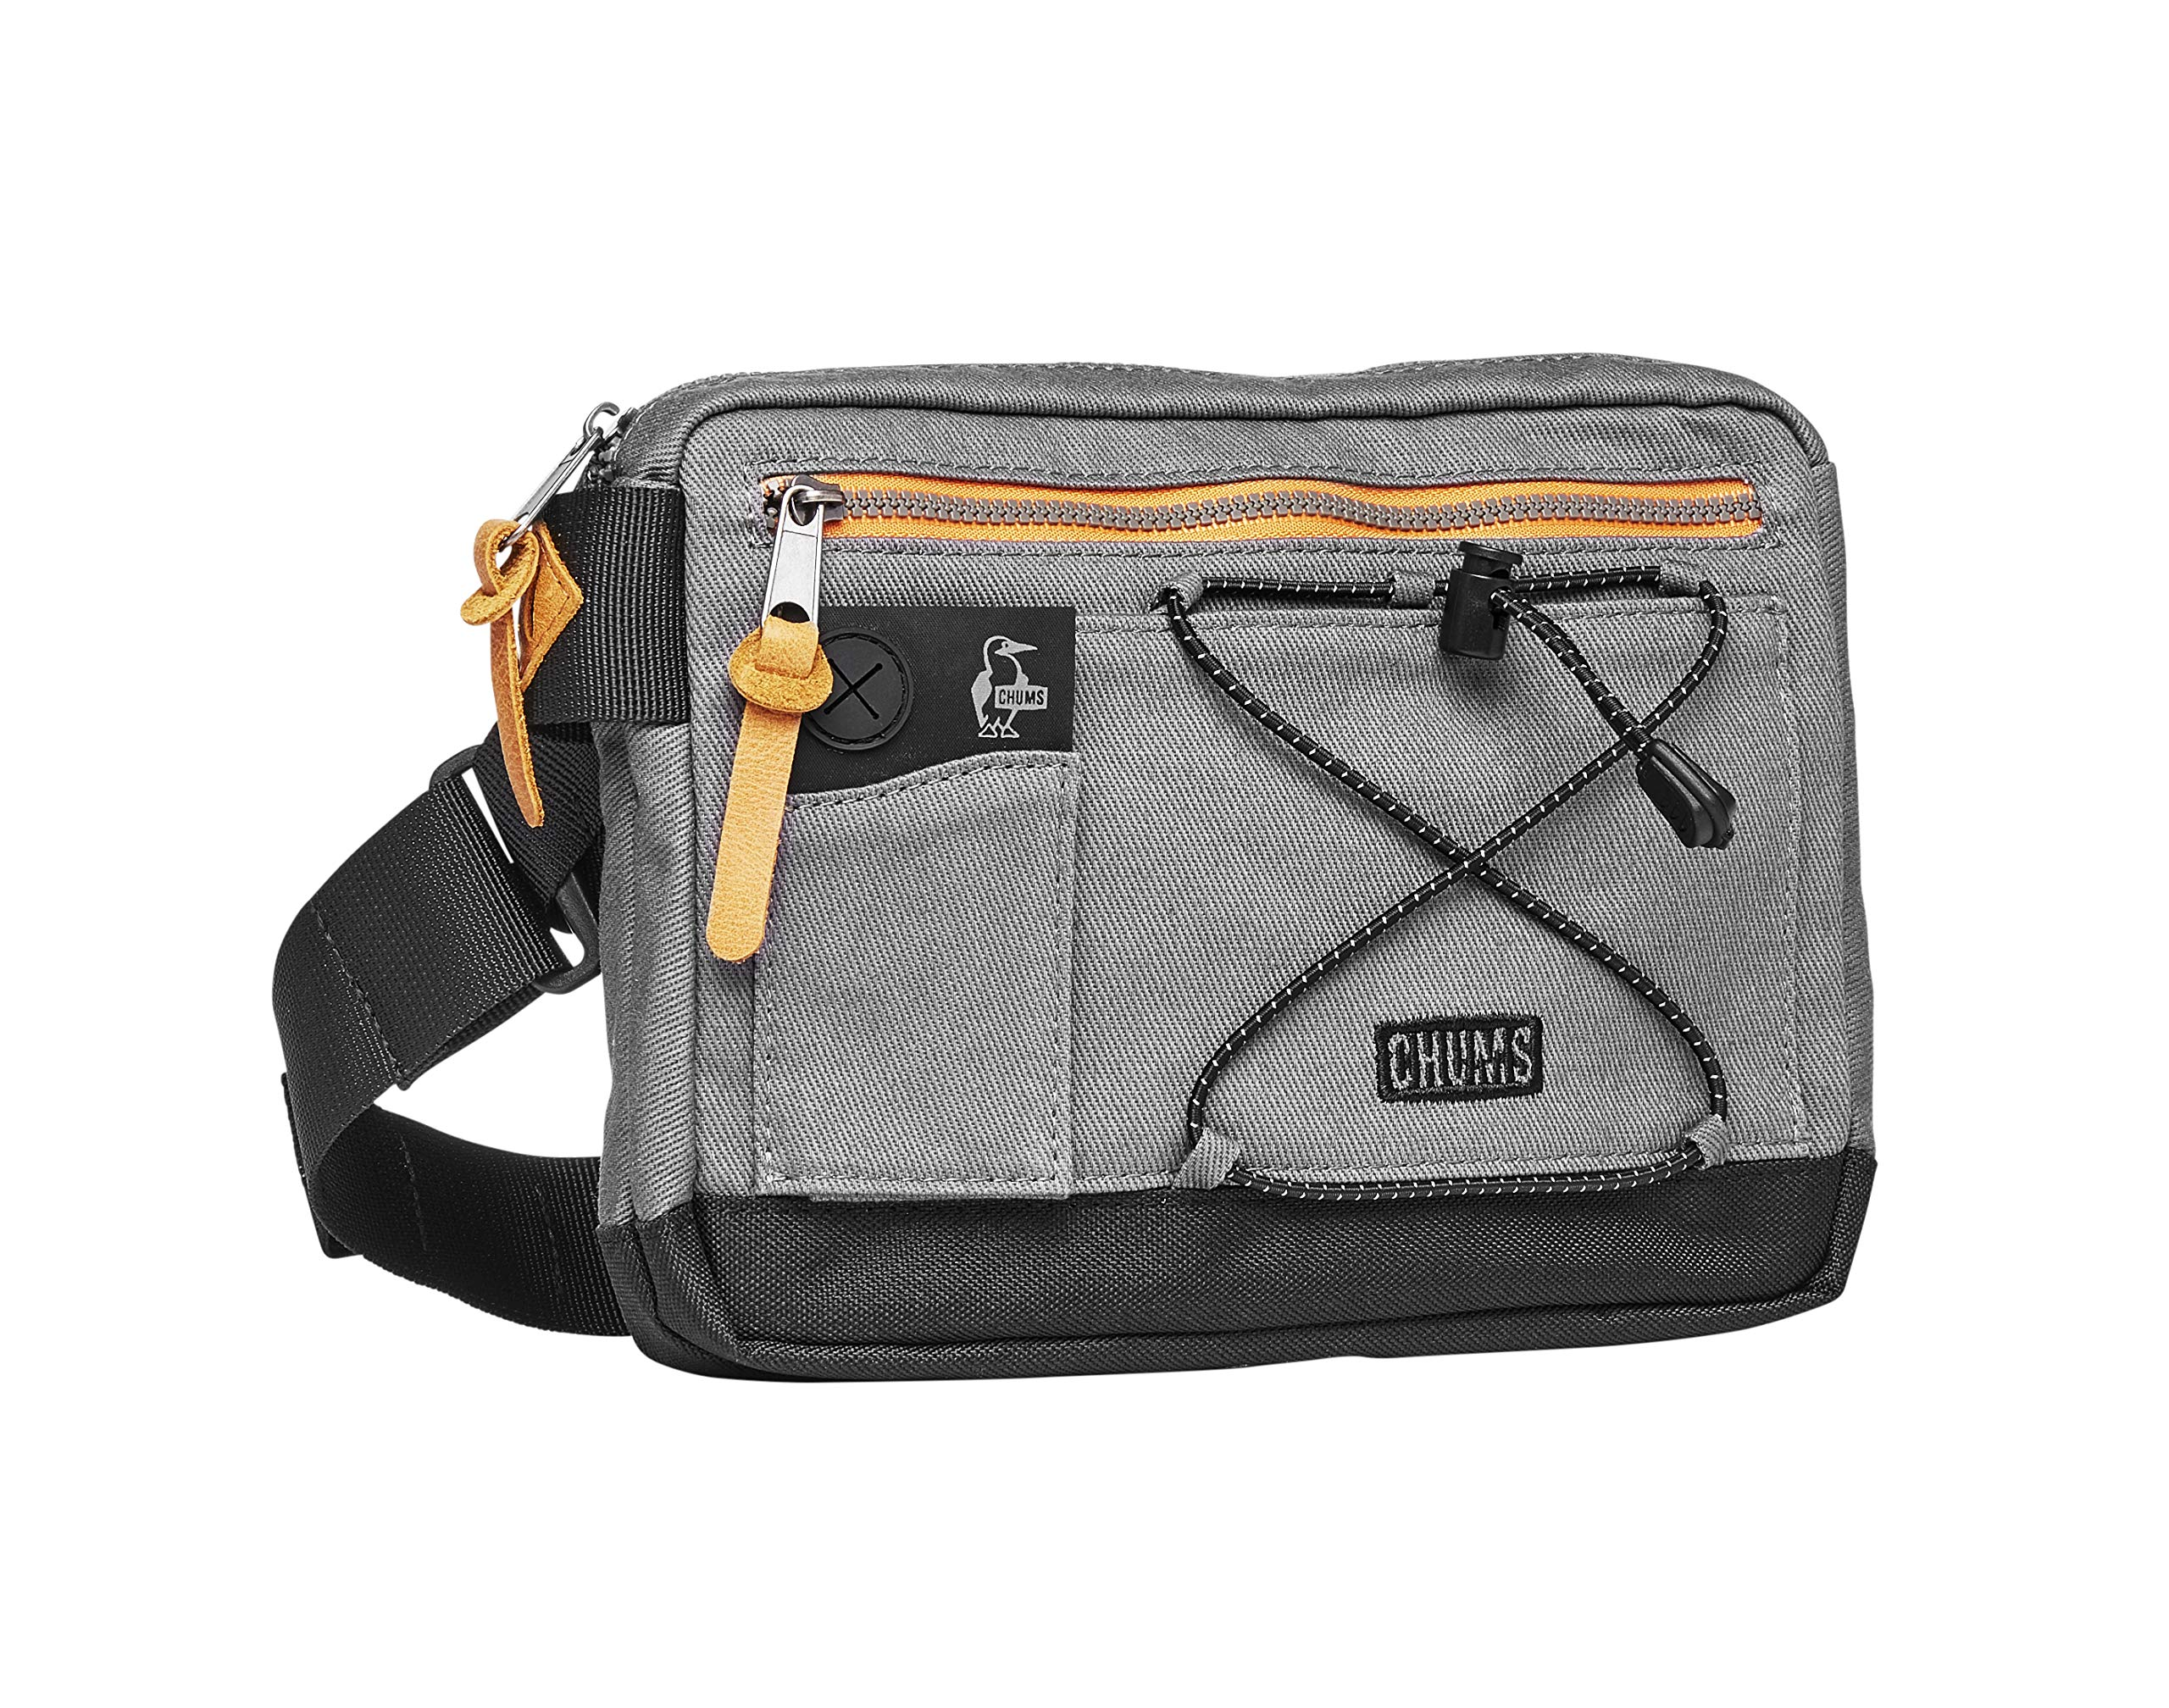 Chums Scrambler Reflective Waist Pack Shoulder Bag, Gray/Black, One Size by Chums